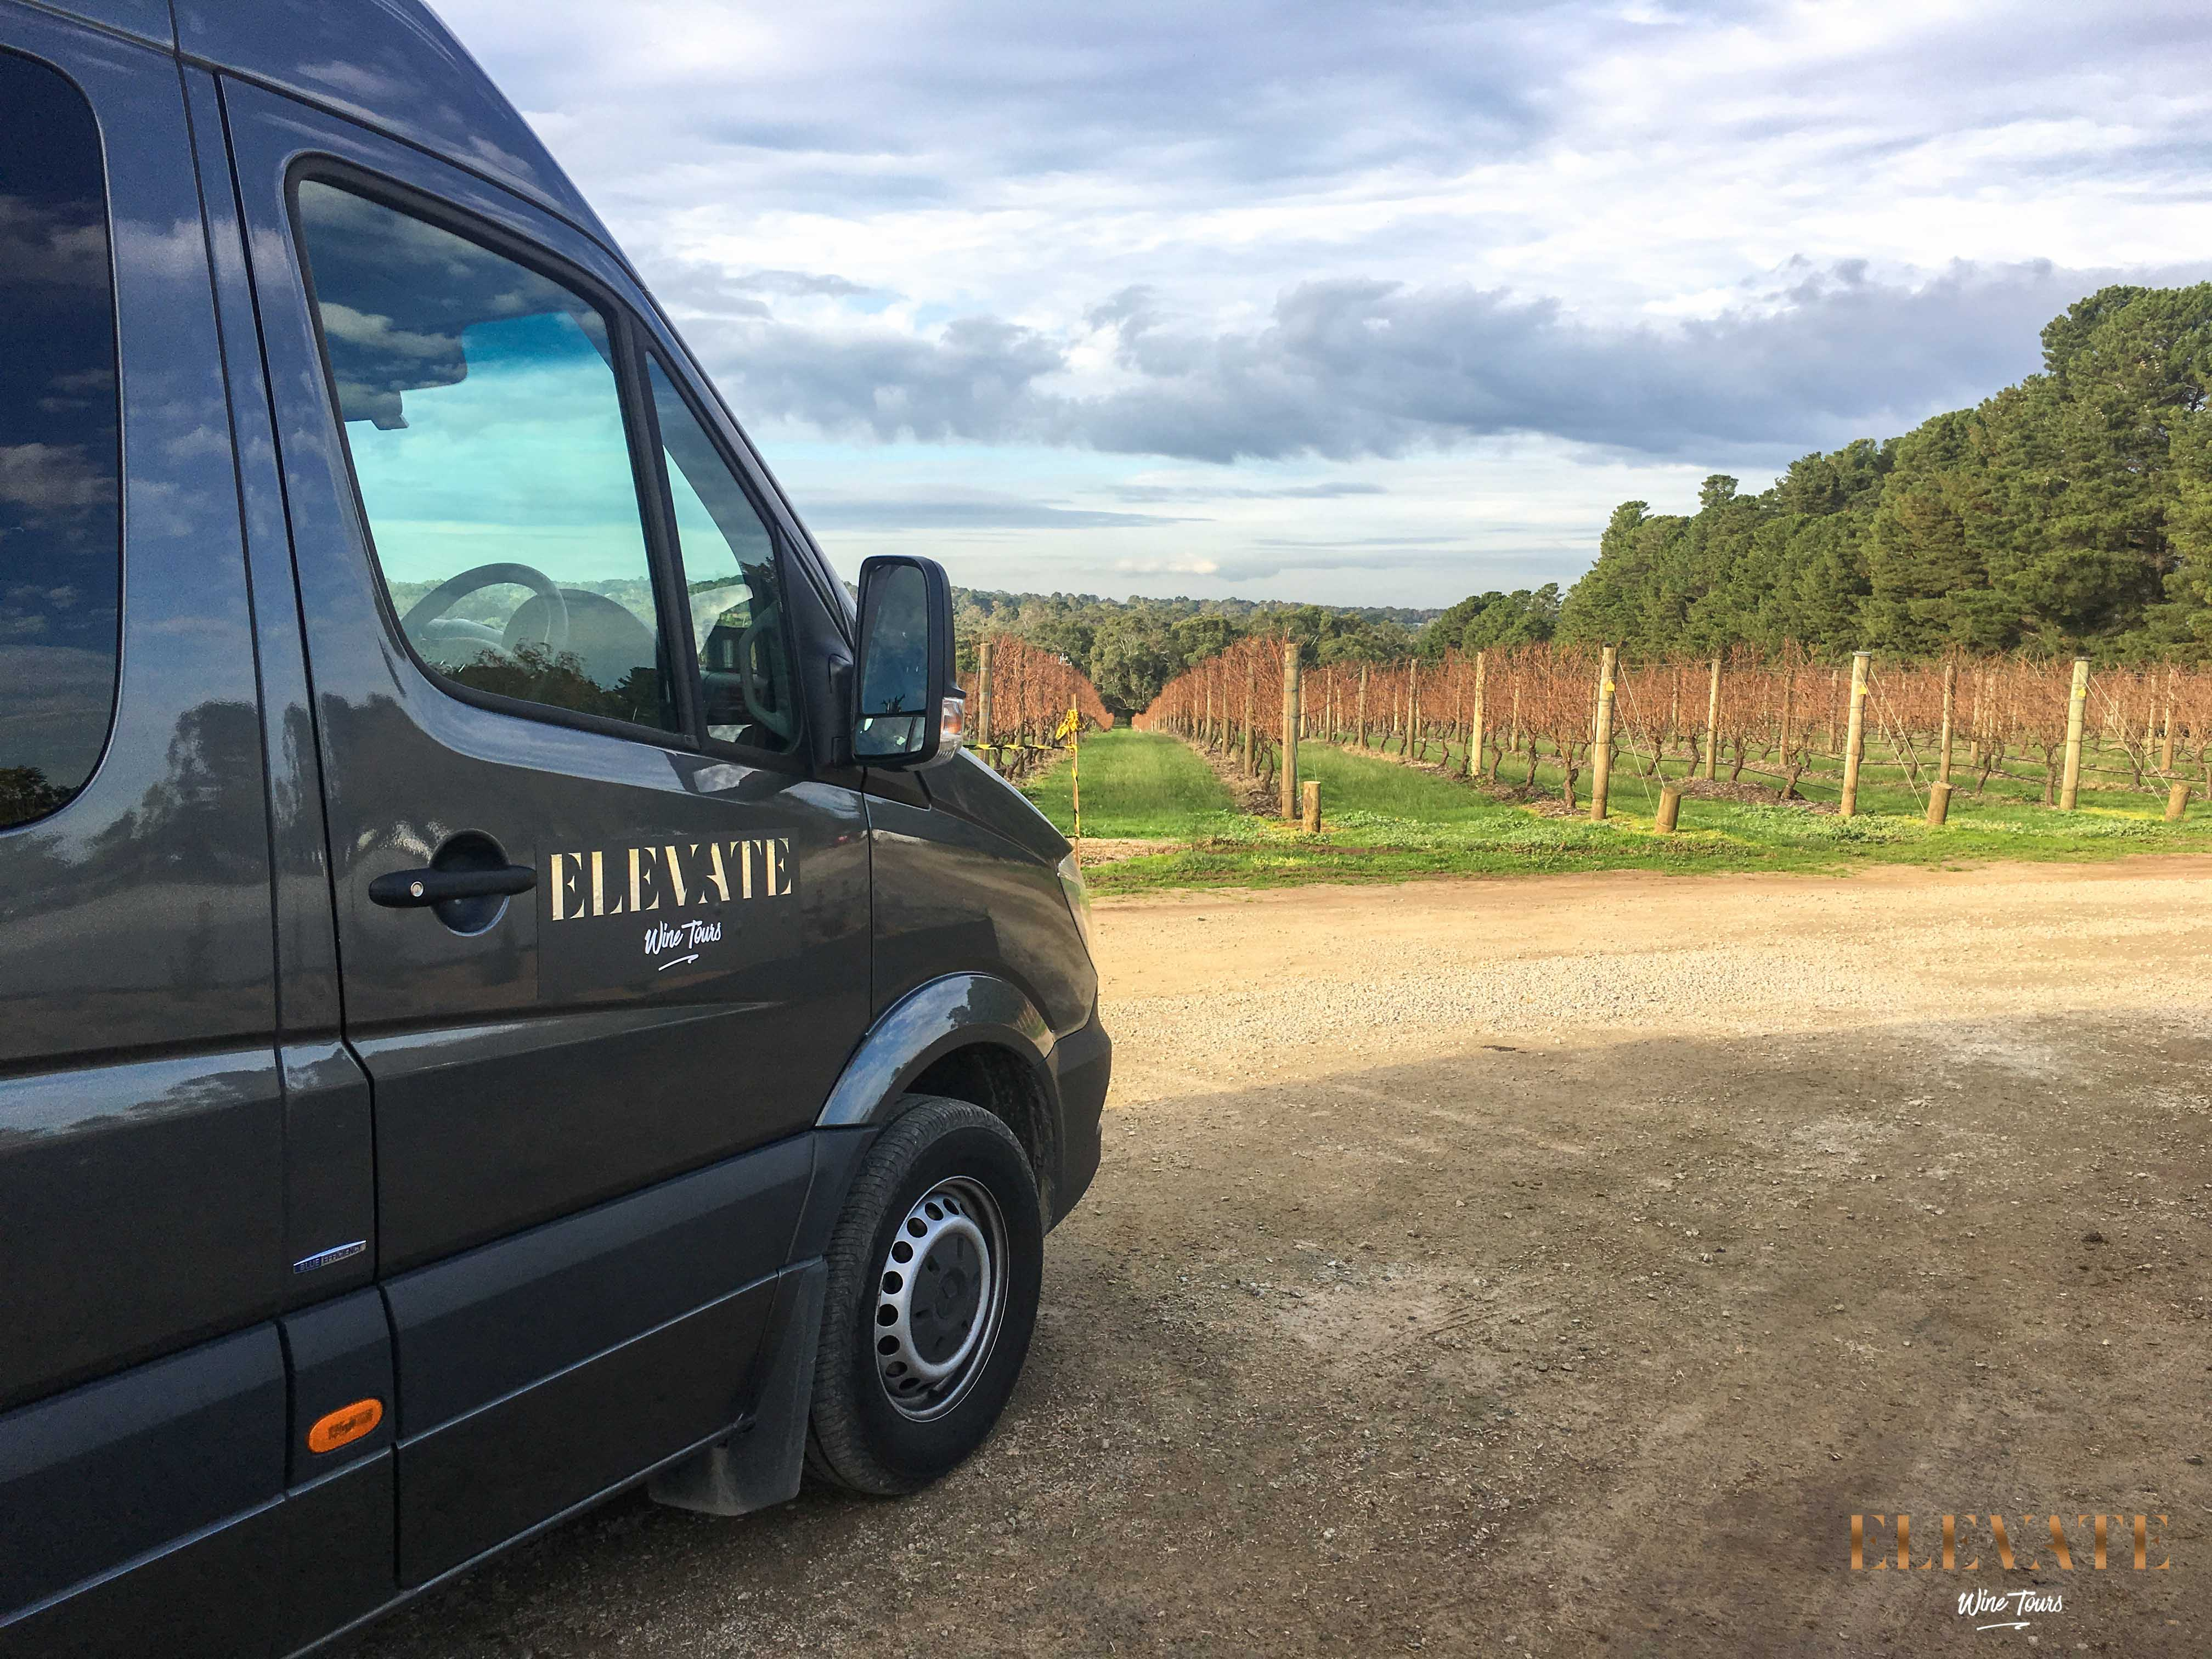 ELEVATE-WINE-TOURS-VEHICLE